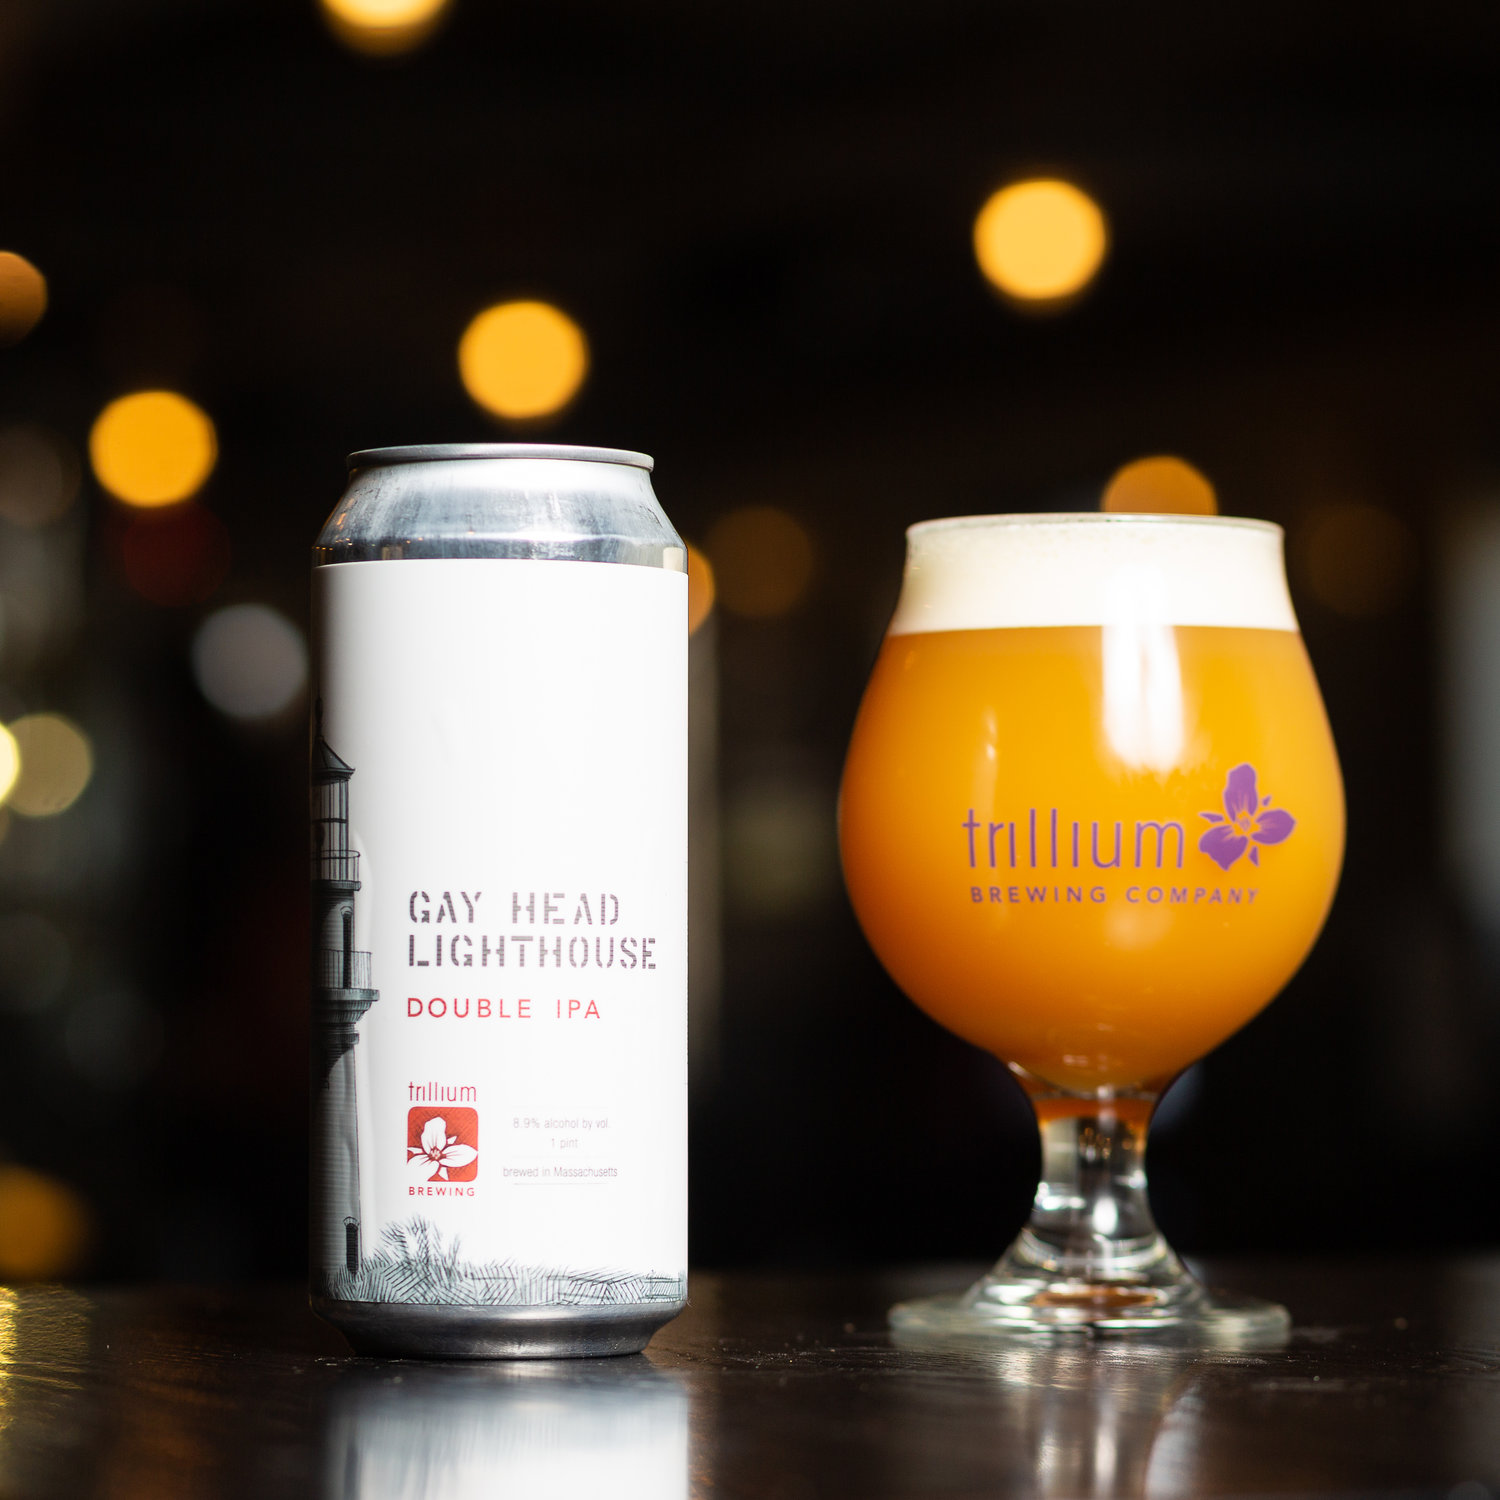 Gay Head Lighthouse — Trillium Brewing Company